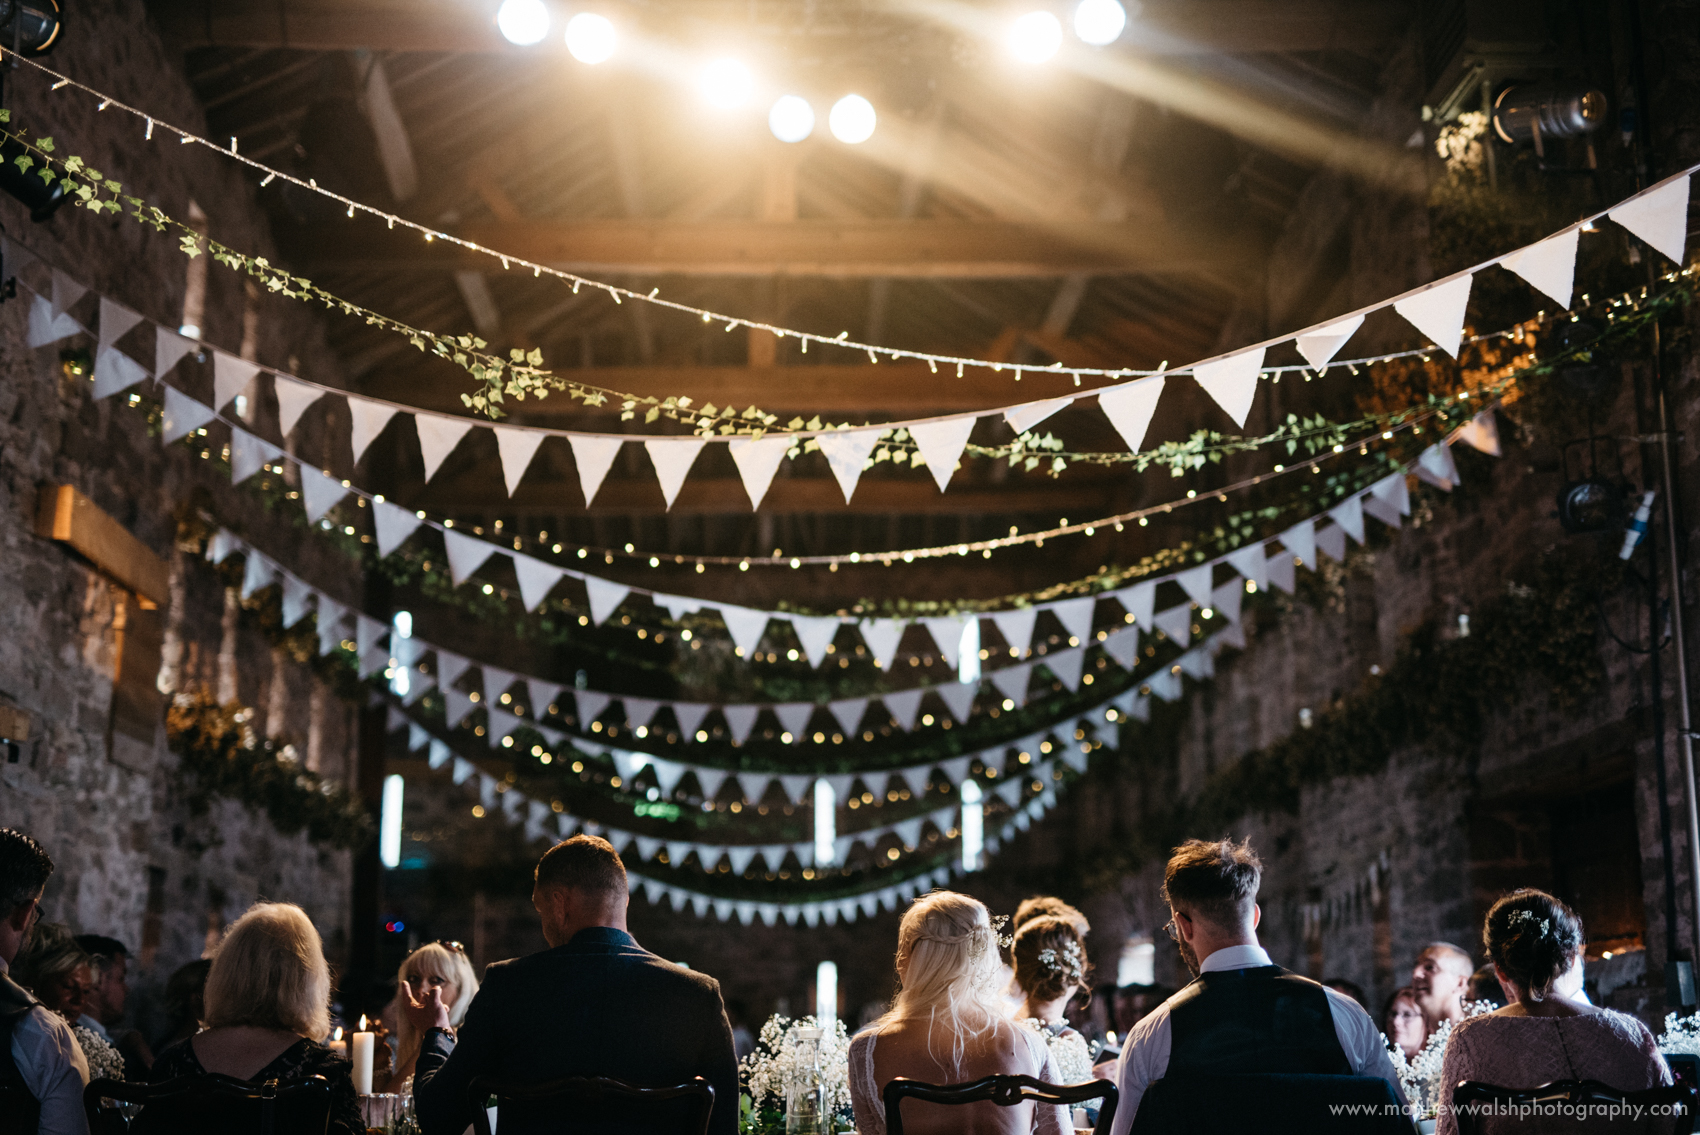 All seated in the main barn, lit by the fairy lights and spot lighting above